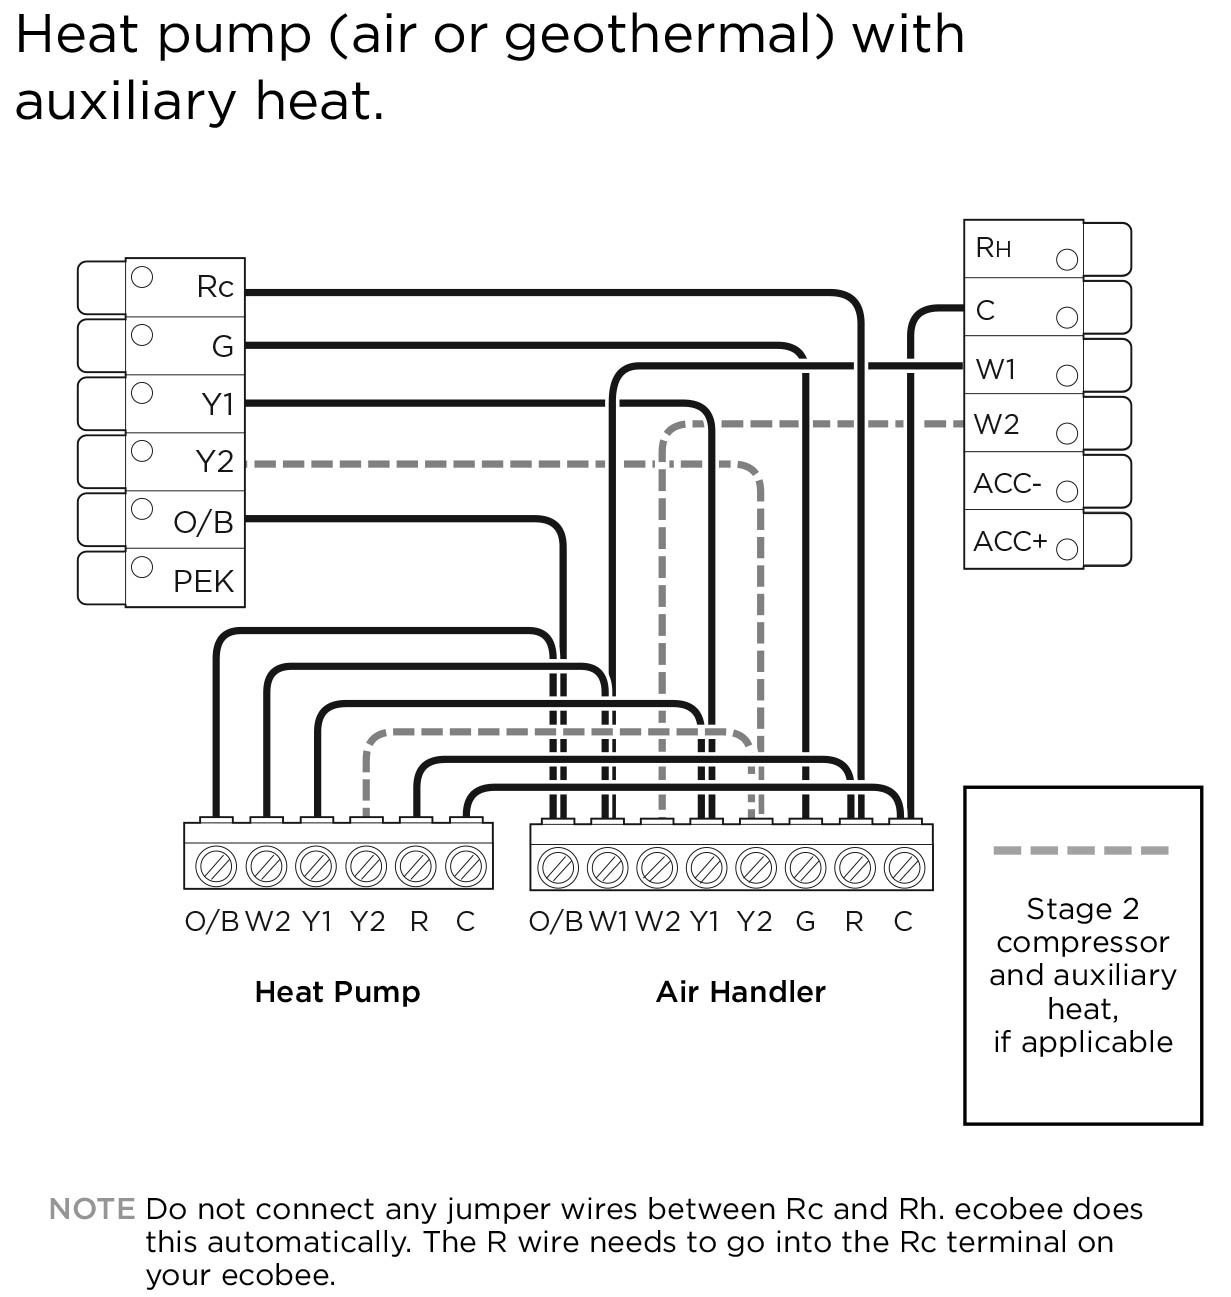 Geothermal Heat Pump Wiring Diagram | Manual E-Books - Heat Pump Wiring Diagram